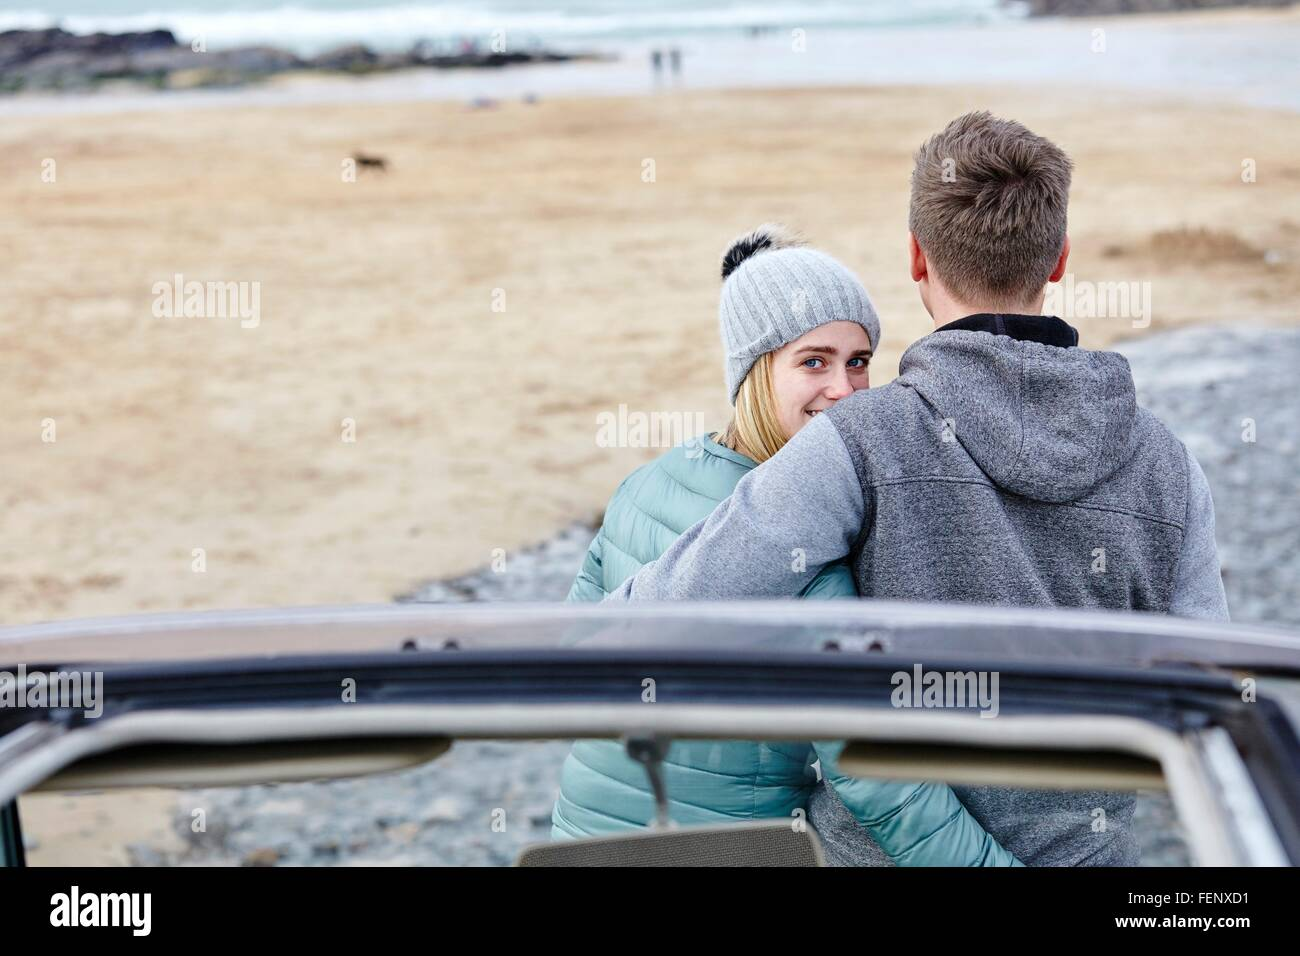 Young couple with arms around each other at beach, Constantine Bay, Cornwall, UK - Stock Image